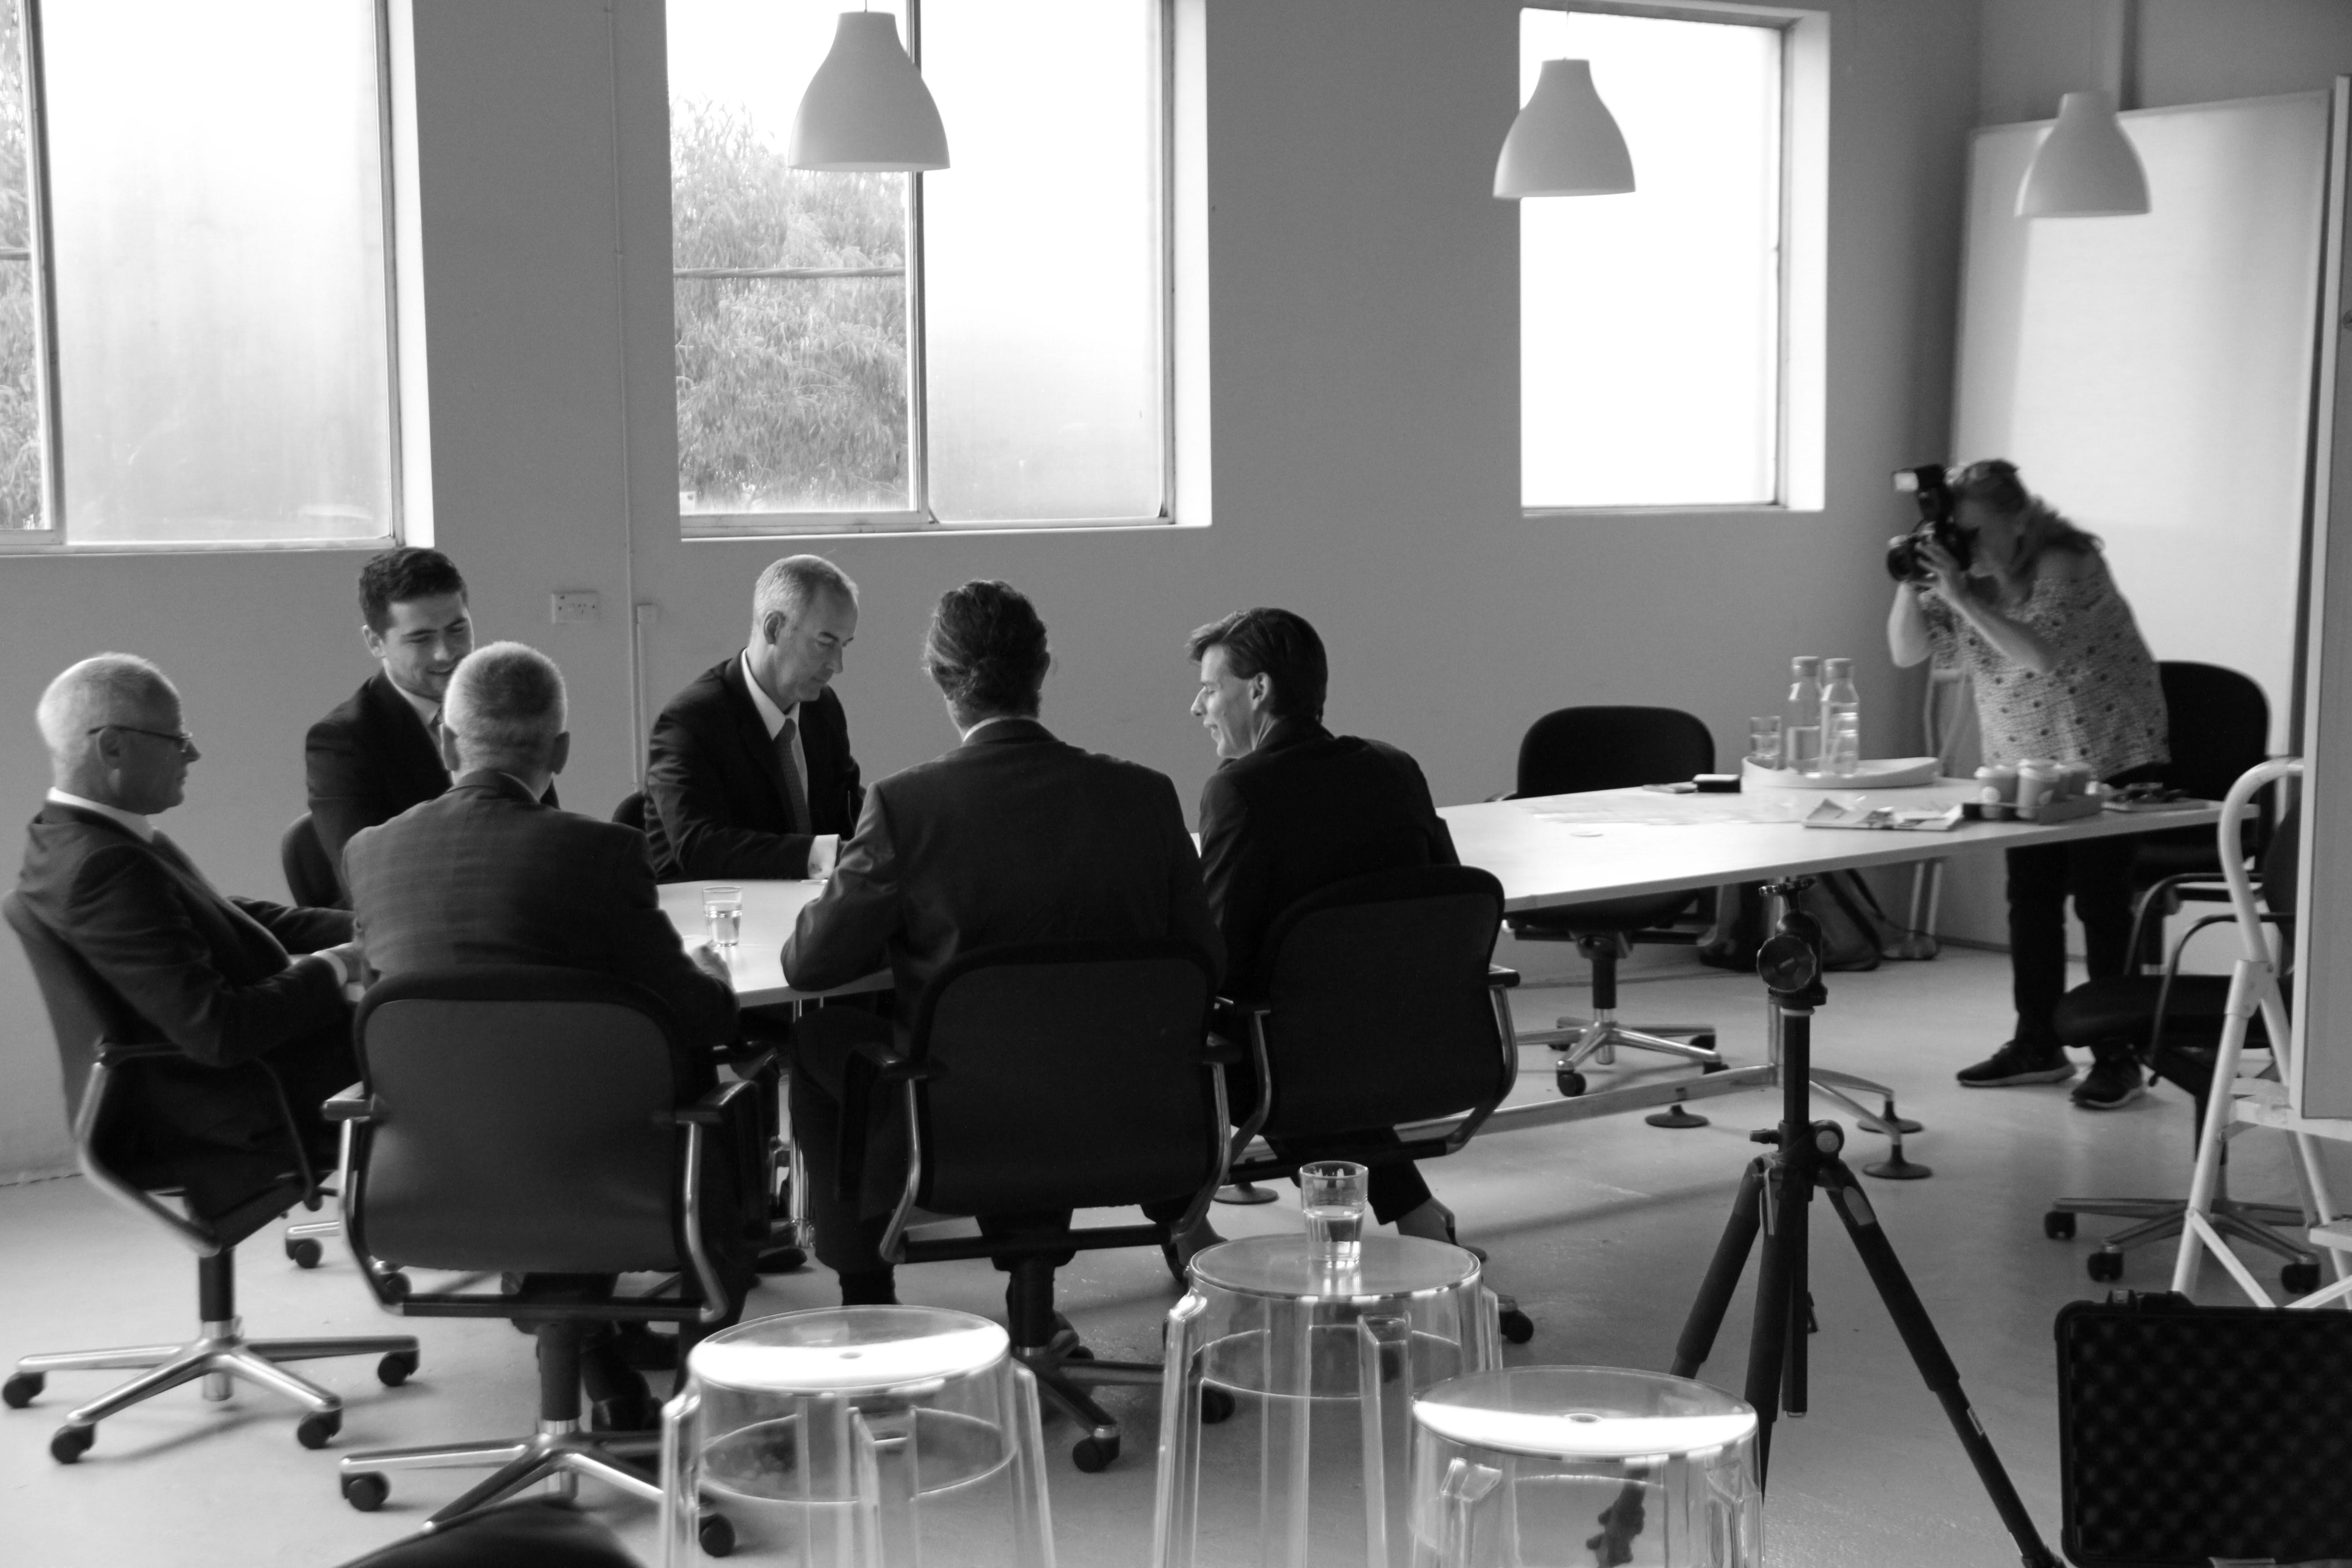 Meeting room at Independent Studios, image 1